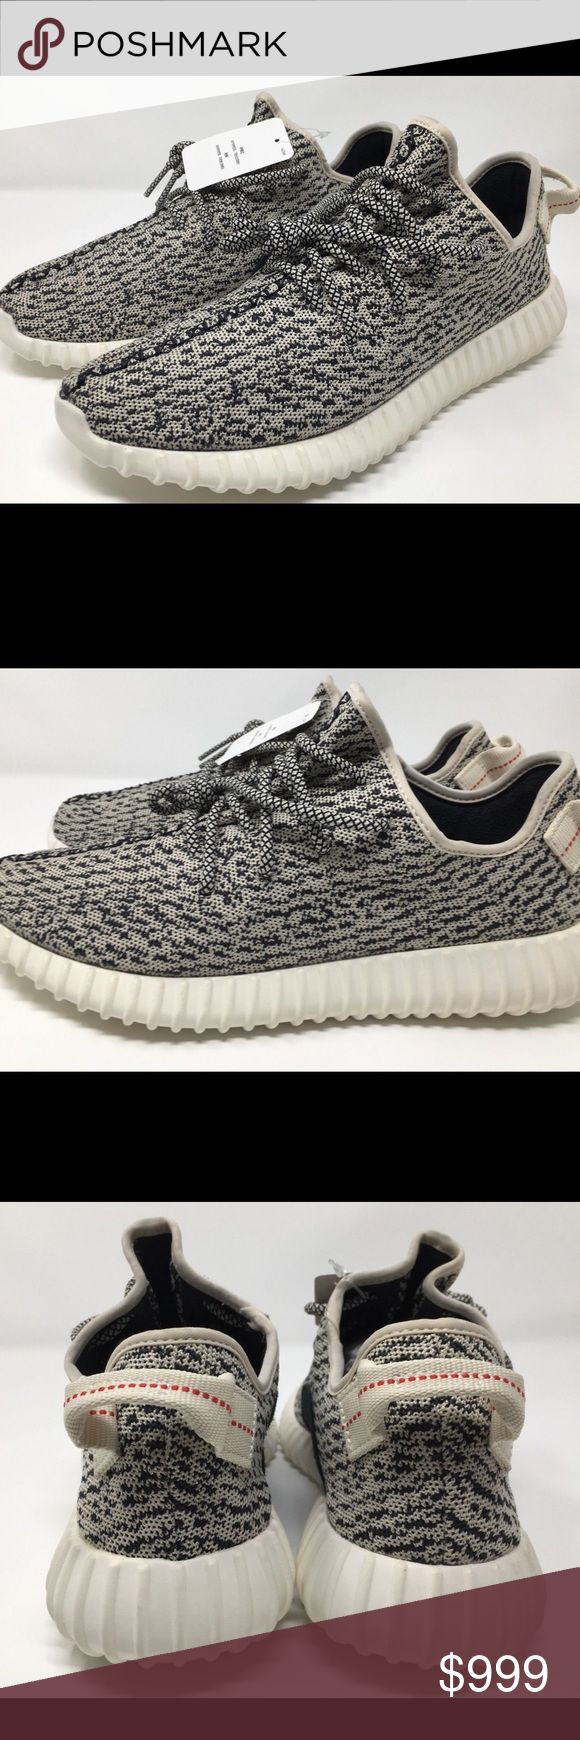 Adidas X Kanye West Yeezy Boost 350 Turtle Dove Adidas X Kanye West Yeezy Boost 350 Turtle Dove AQ4832 Brand New Never Worn In Box 100% Authentic adidas Shoes Athletic Shoes